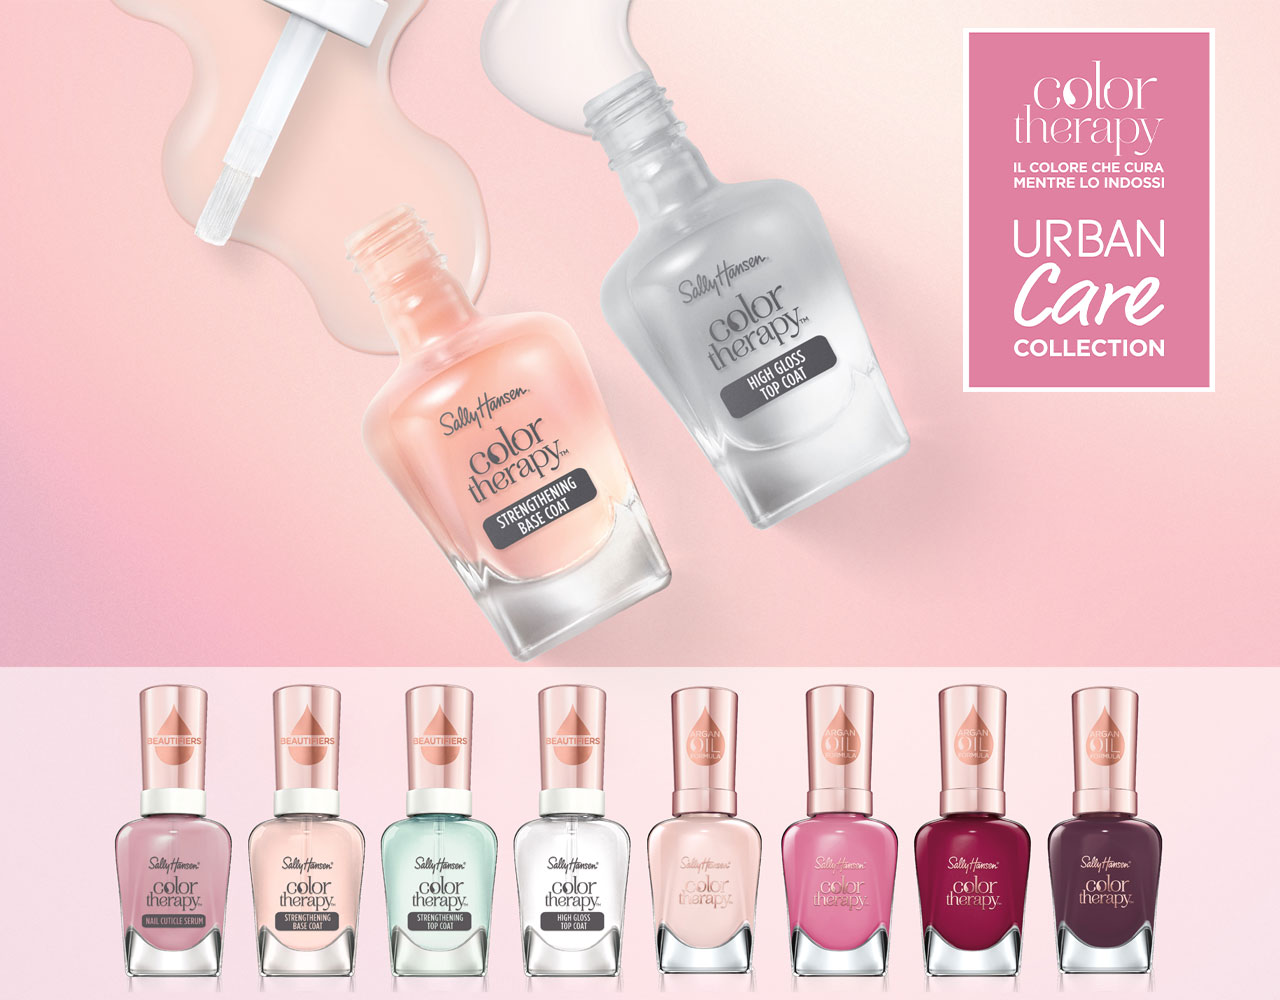 Urban Care homepage image